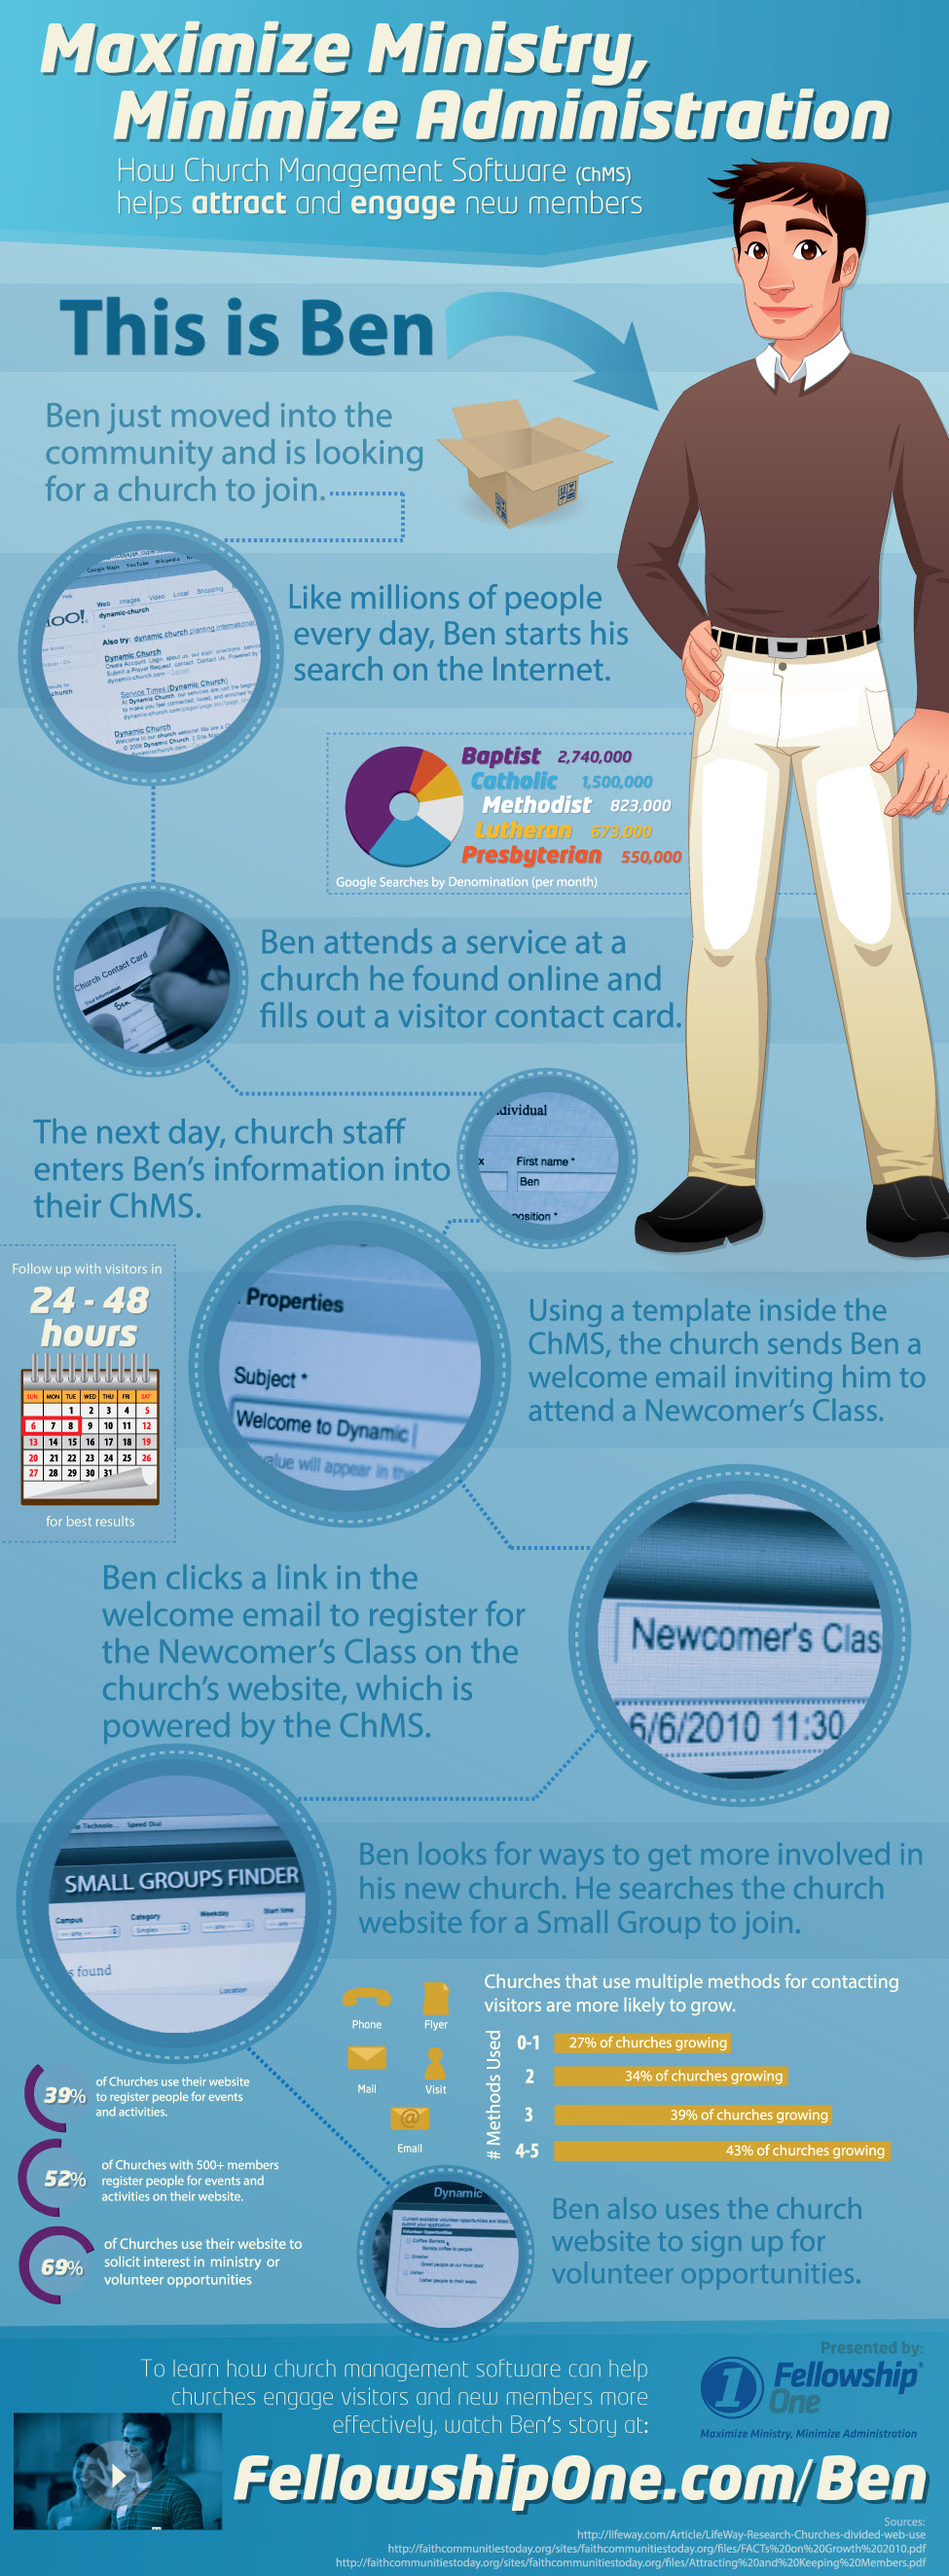 Church Management Software Trends-infographic